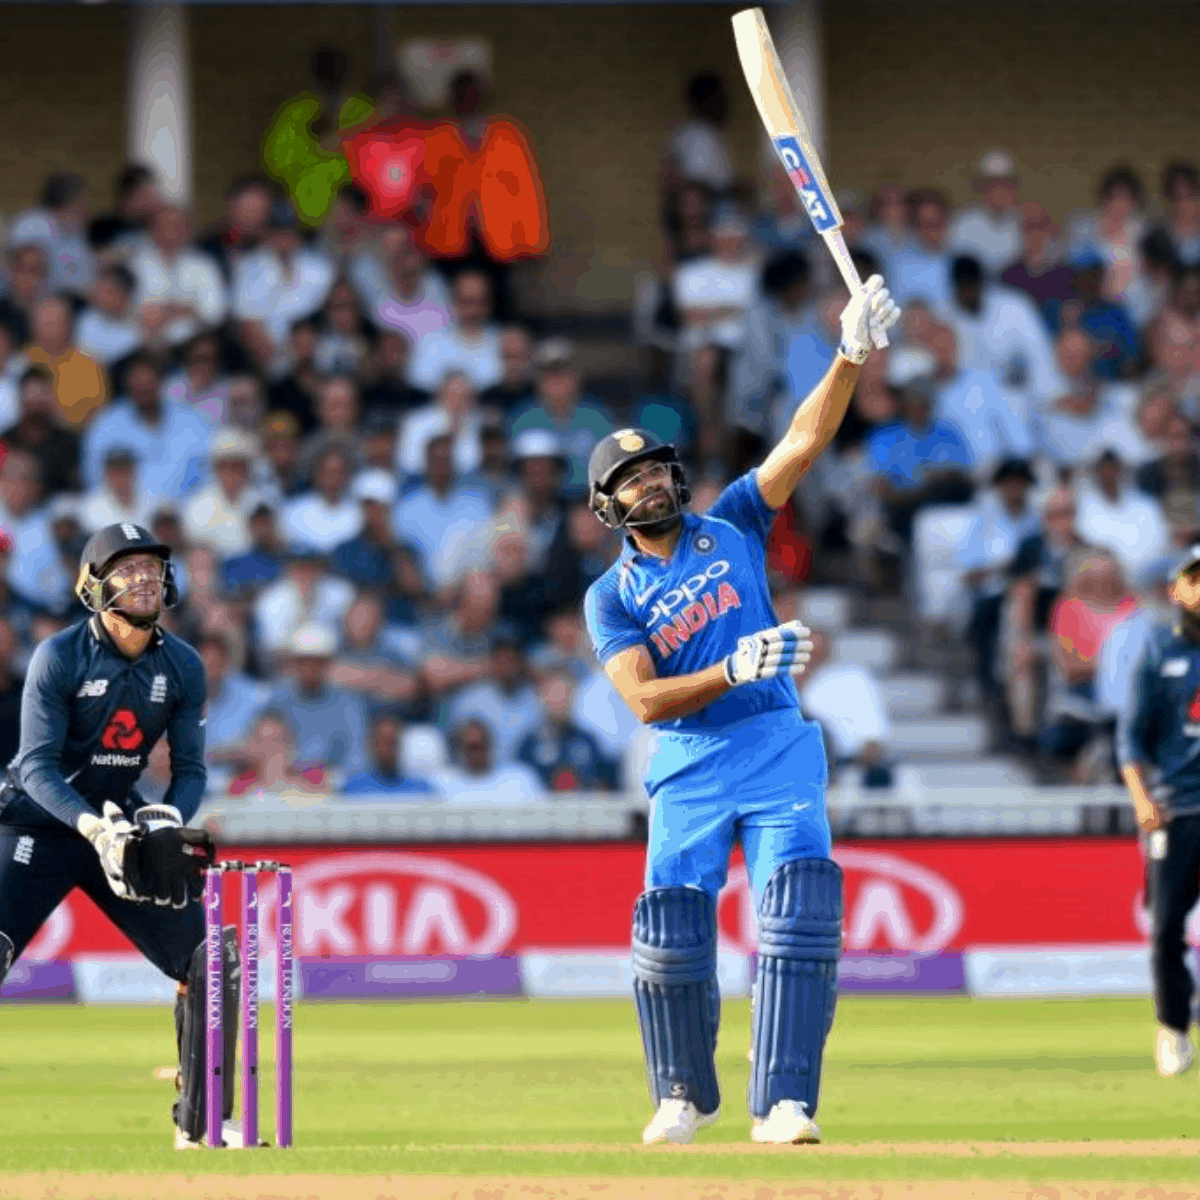 Never thought I'd score a double century in ODIs: Rohit Sharma